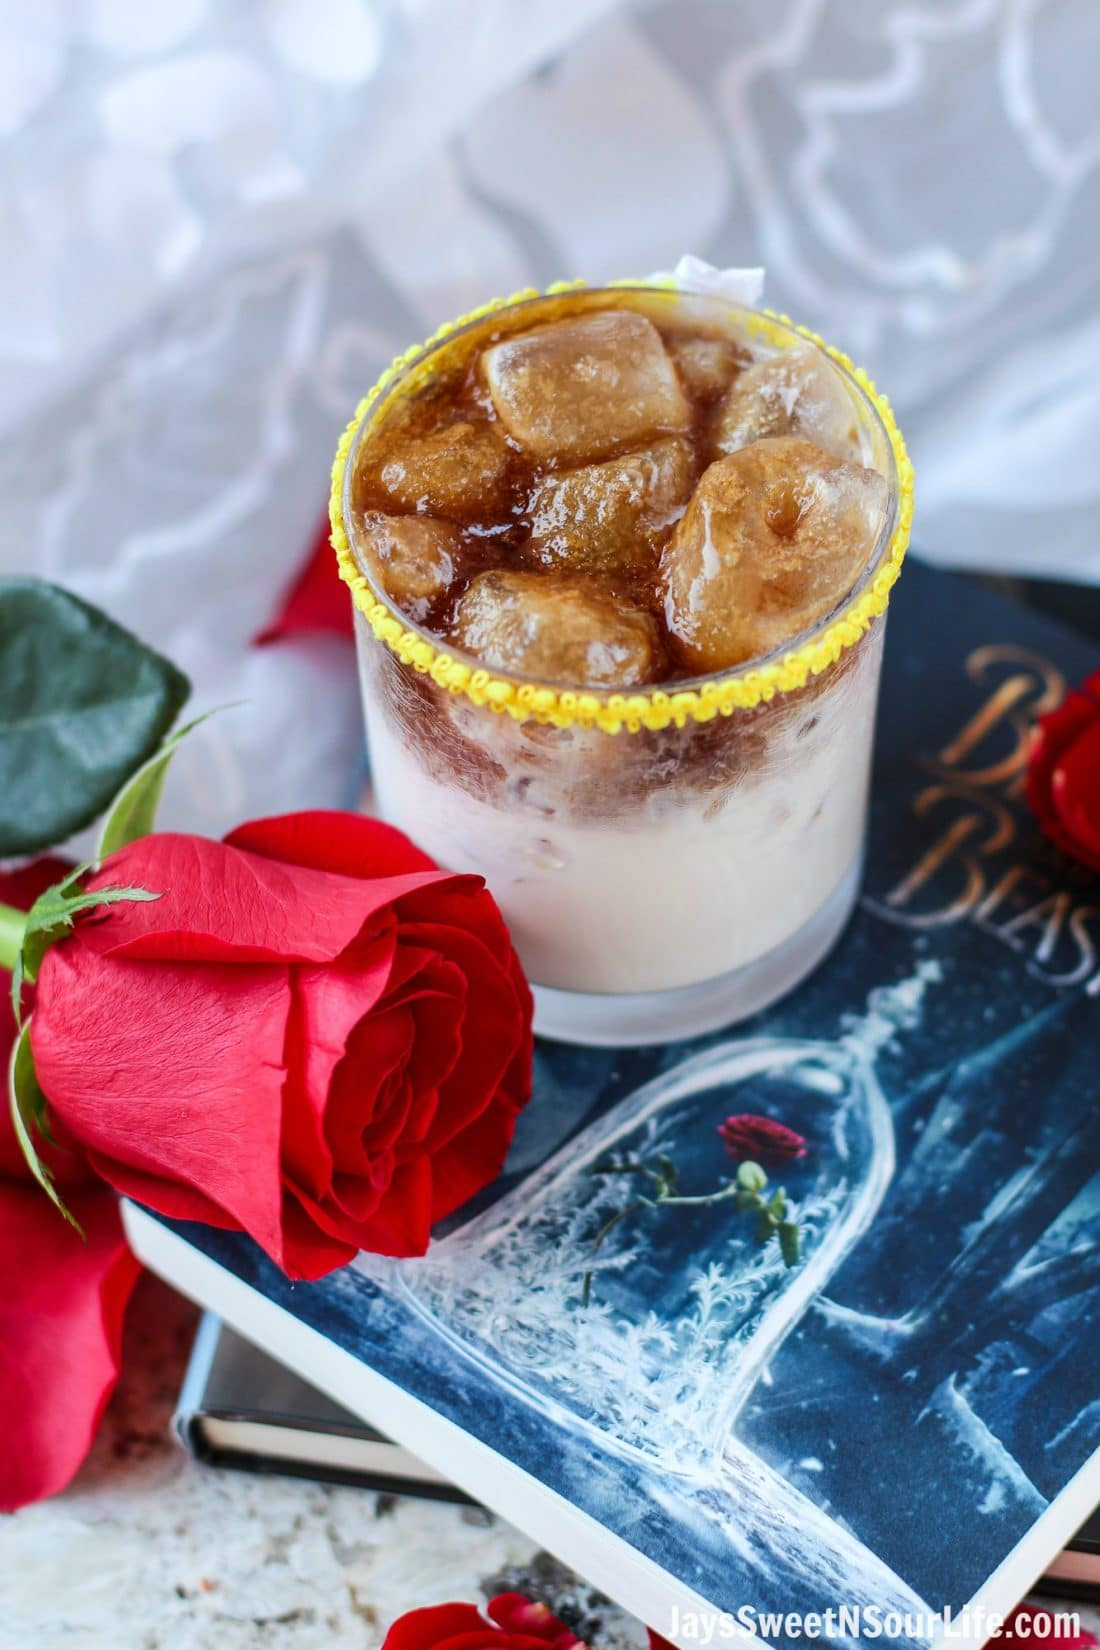 Beauty and the Beast Cocktail Rose. Break the curse with this Disney inspired Beauty and the Beast Cocktail. Made with layers of Kringle Cream Liqueur and Coffee Soda, this simple but elegant cocktail recipe delivers a delicious big flavor.